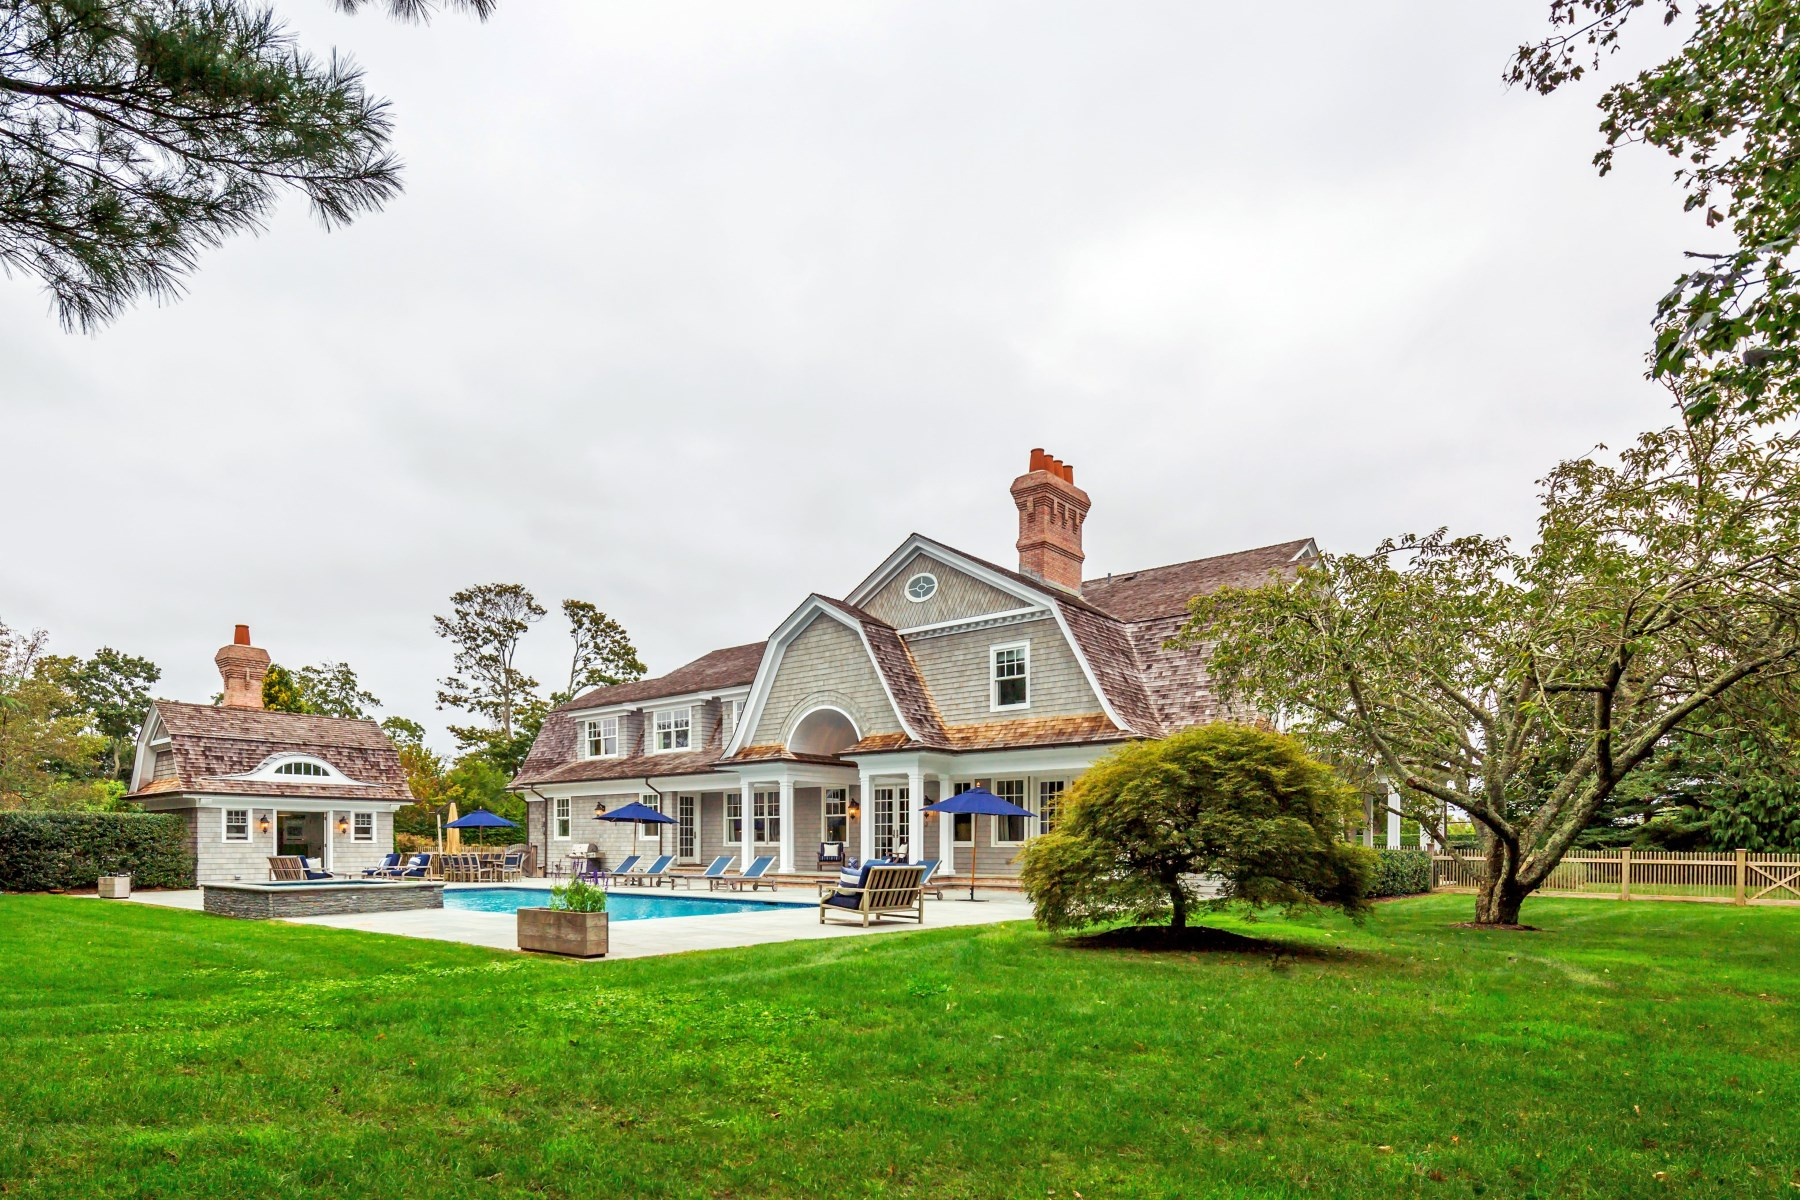 Single Family Home for Rent at Ocean Road Bridgehampton Bridgehampton South, Bridgehampton, New York, 11932 United States